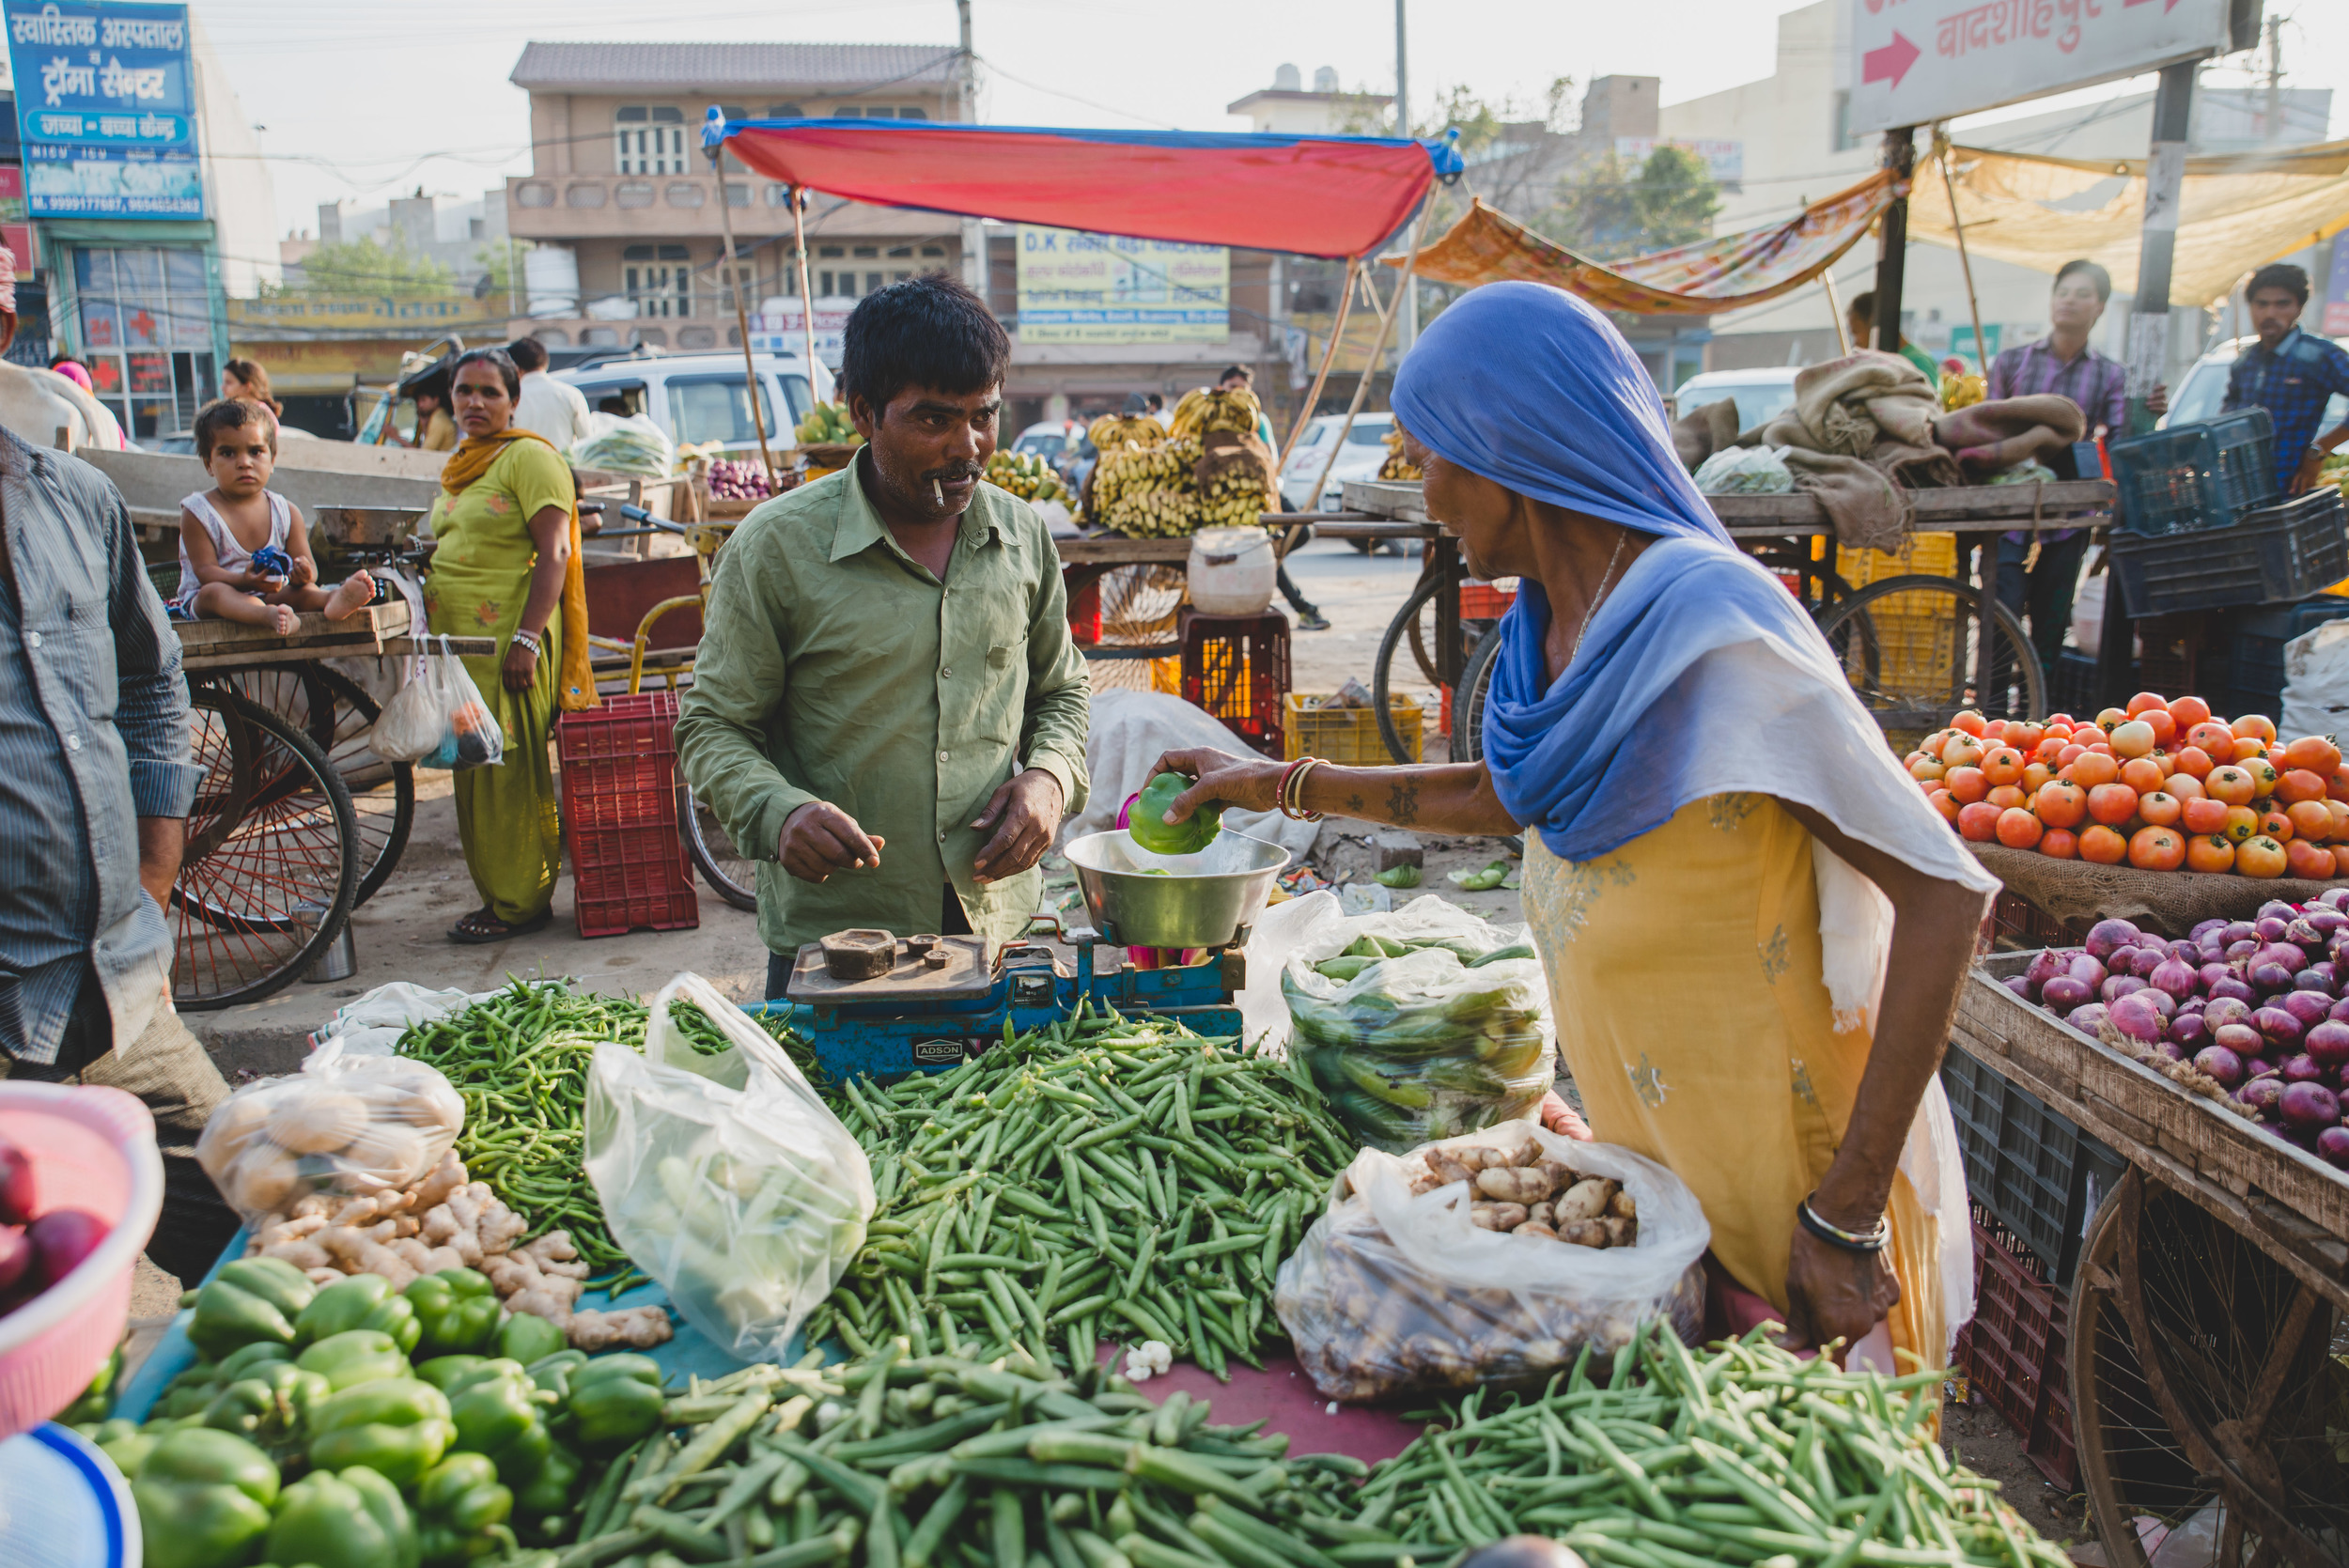 We accompanied our host through a labyrinth of narrow dirt roads to reach the marketplace on one of the city's newer roads. With the money earned from washing dishes, she was able to buy the kind of vegetables she used to grow.